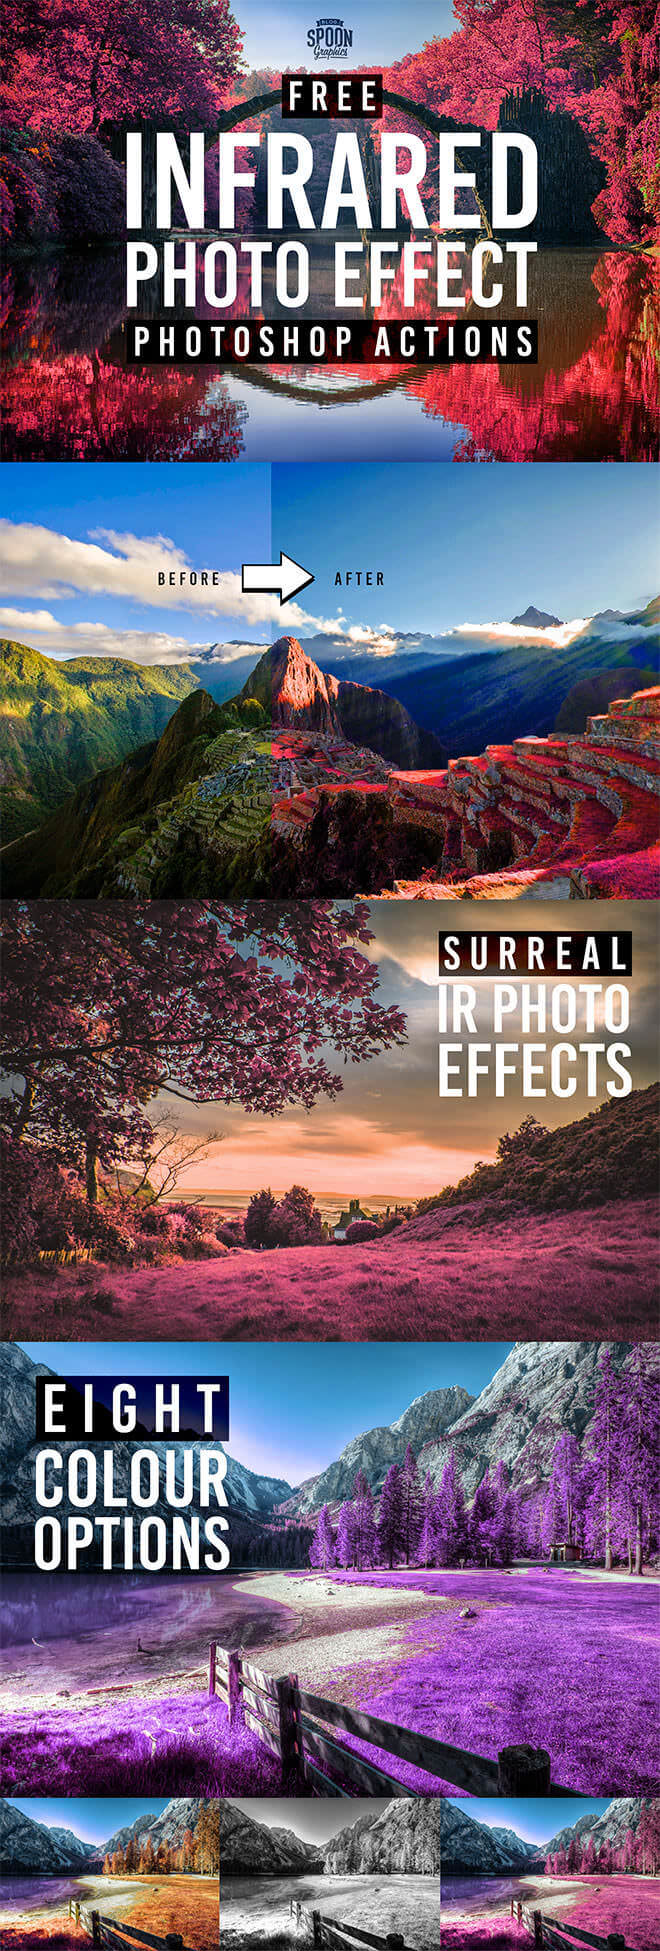 infrared-photo-effect-actions